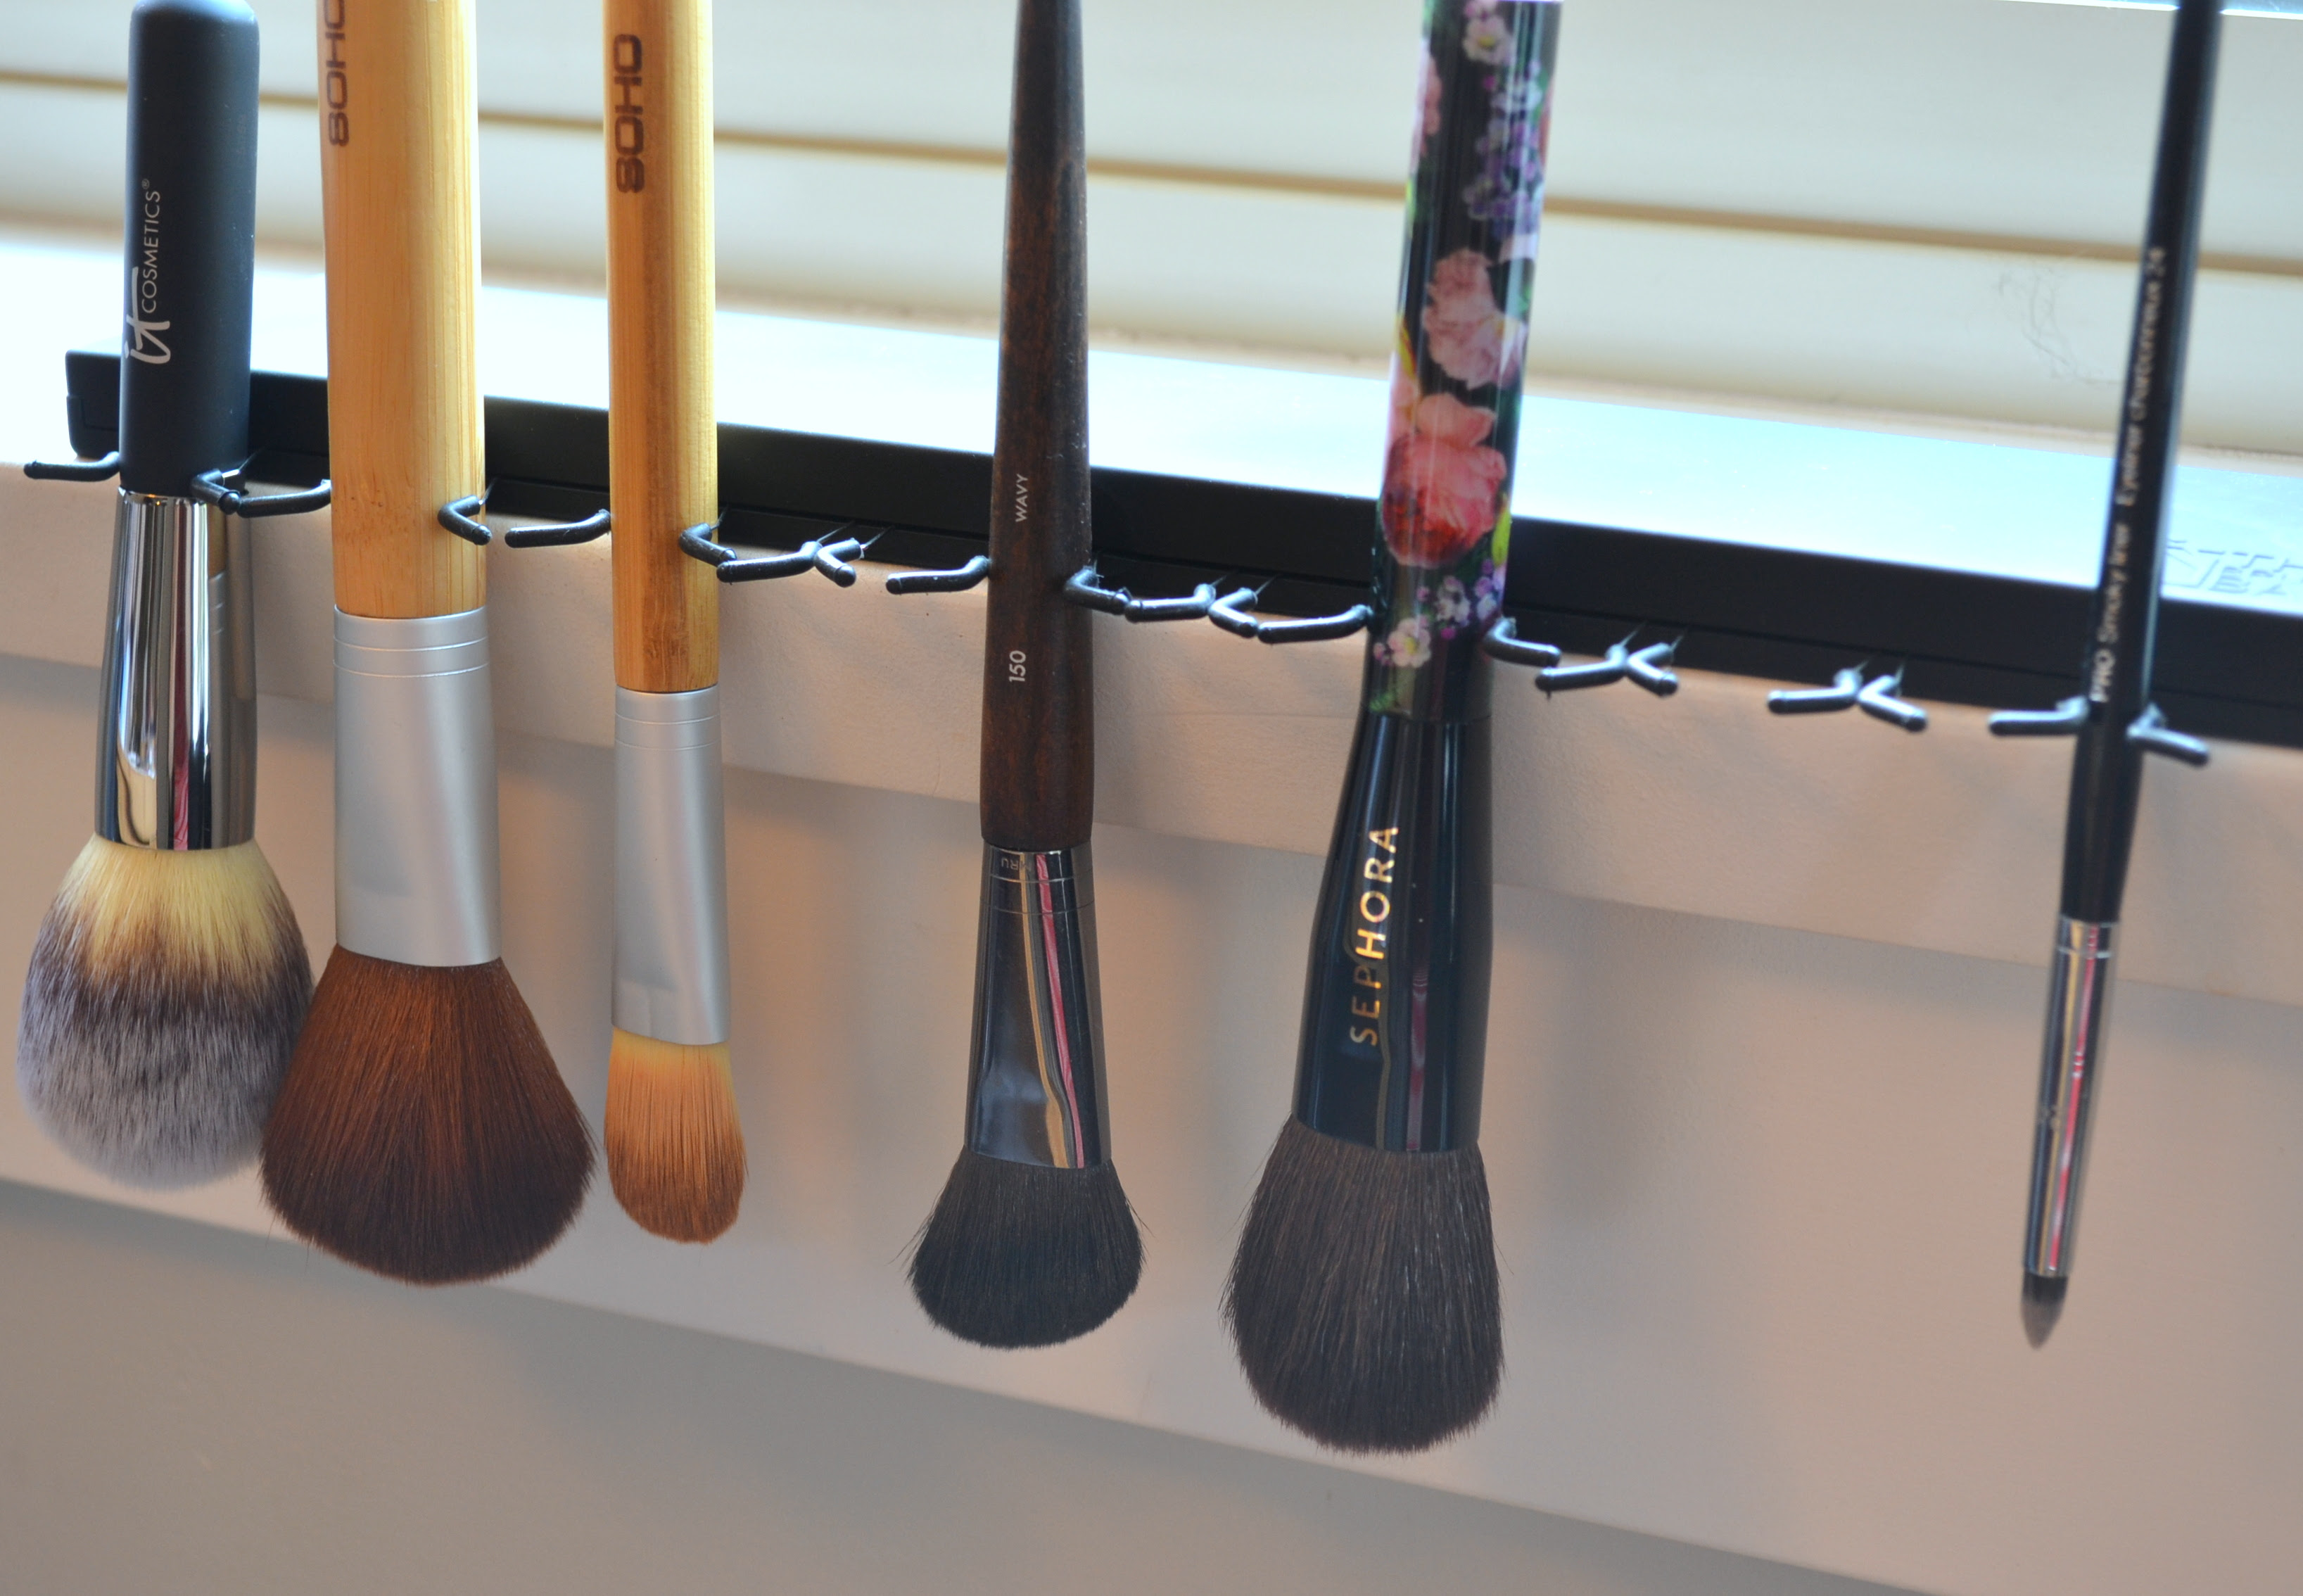 The Brush Bar and Brush Board Review